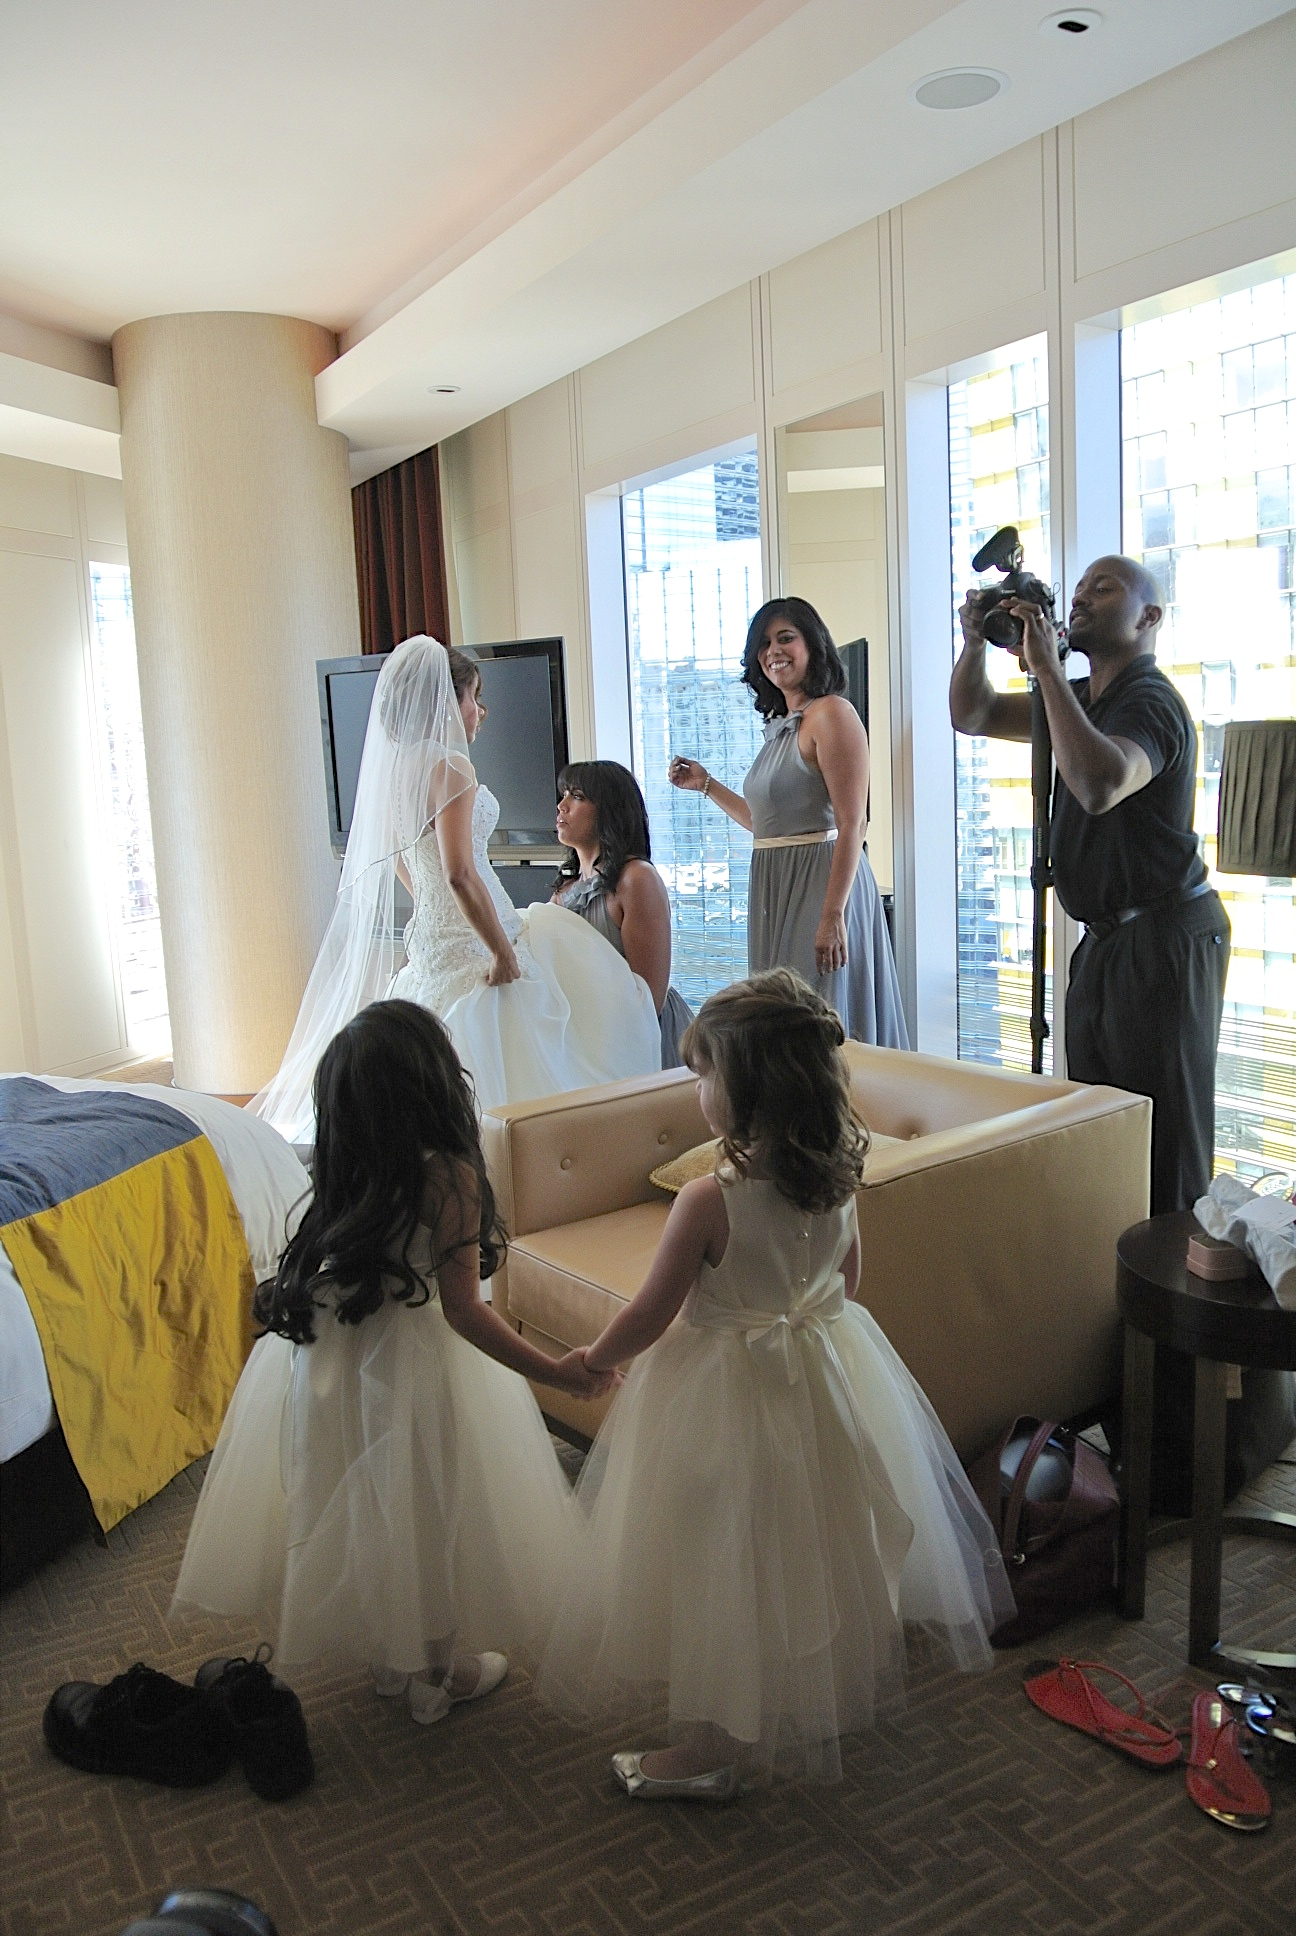 And so it begins...The little flower girls were mesmerized by the bridal process, and clung to each other while Jess was getting ready.   Las Vegas Wedding Planner:    Andrea Eppolito Events    |  Wedding Venue:    Mandarin Oriental Las Vegas